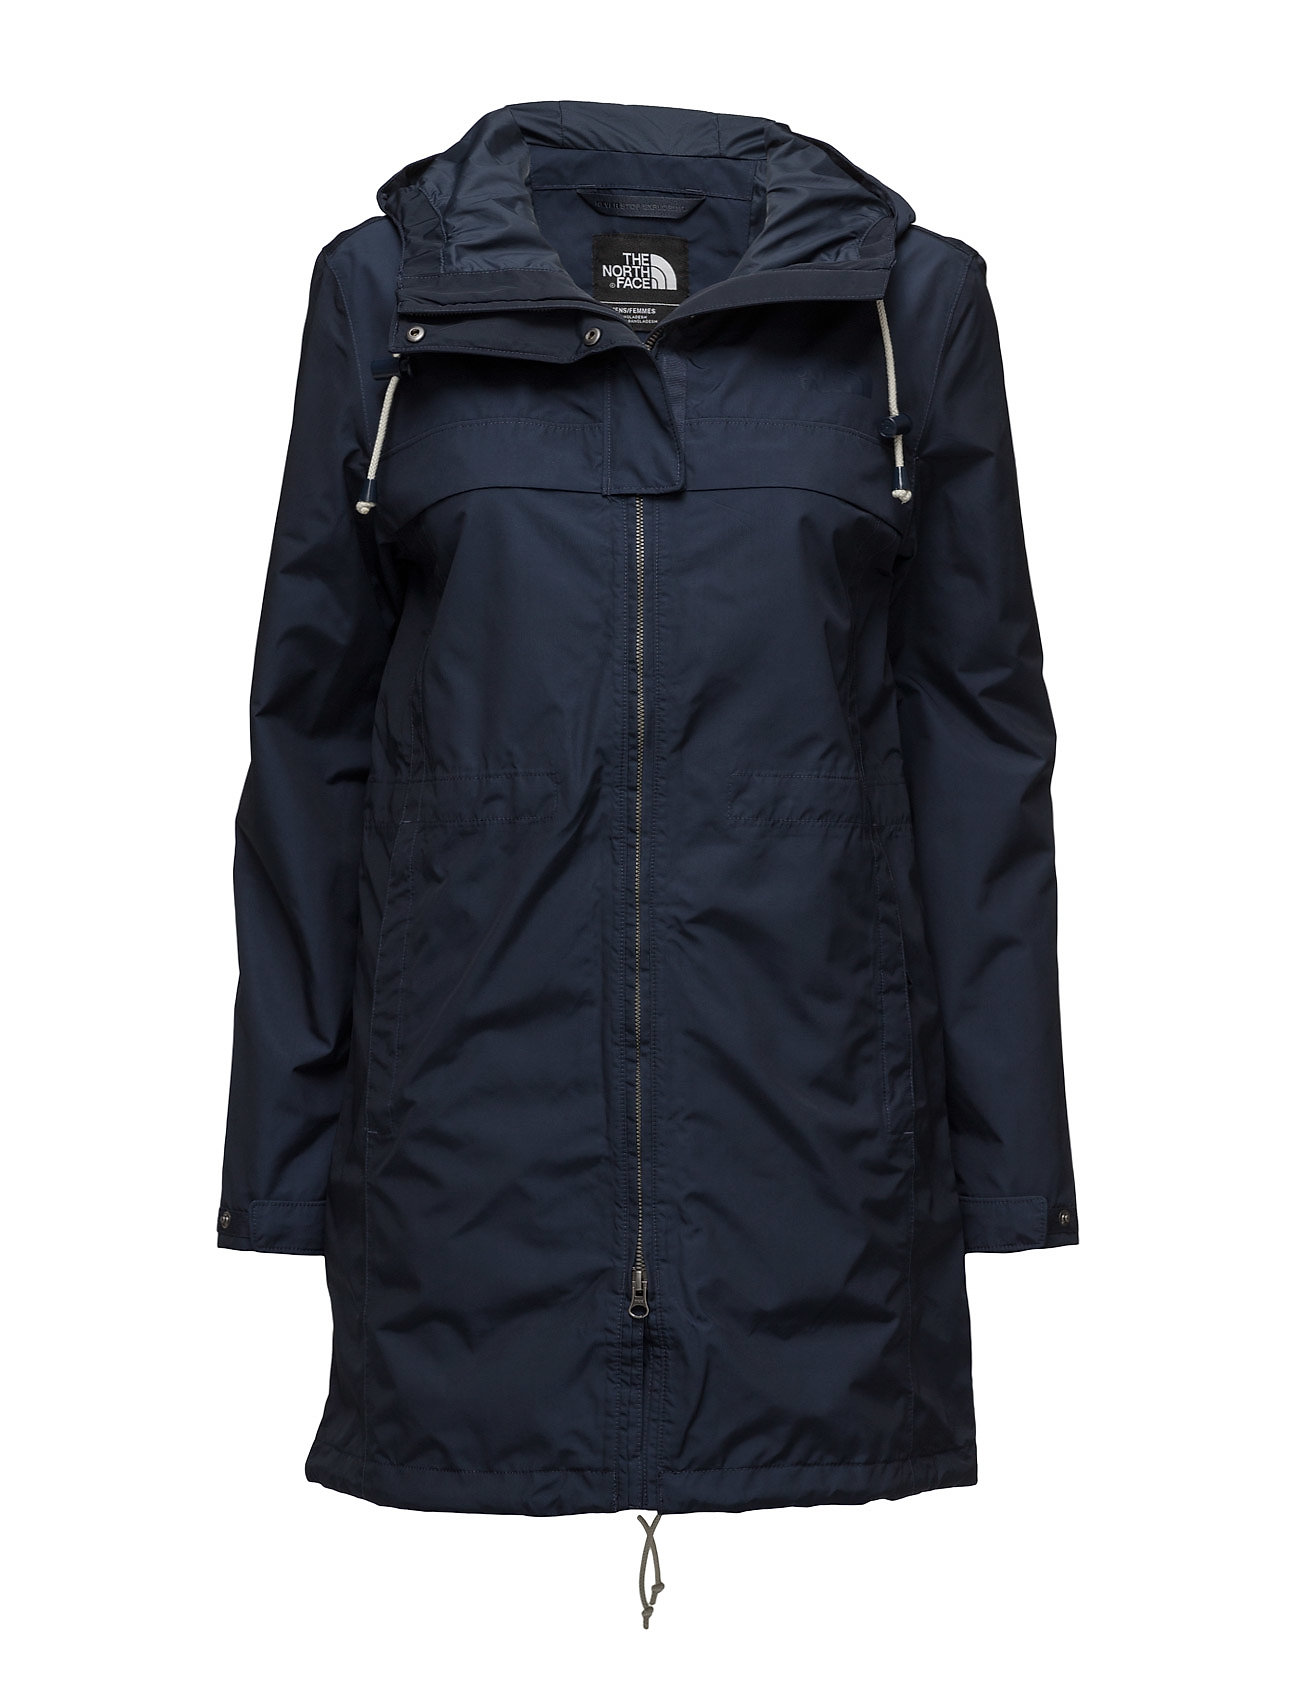 W Cagoule Trench The North Face Sportsjakker til Kvinder i